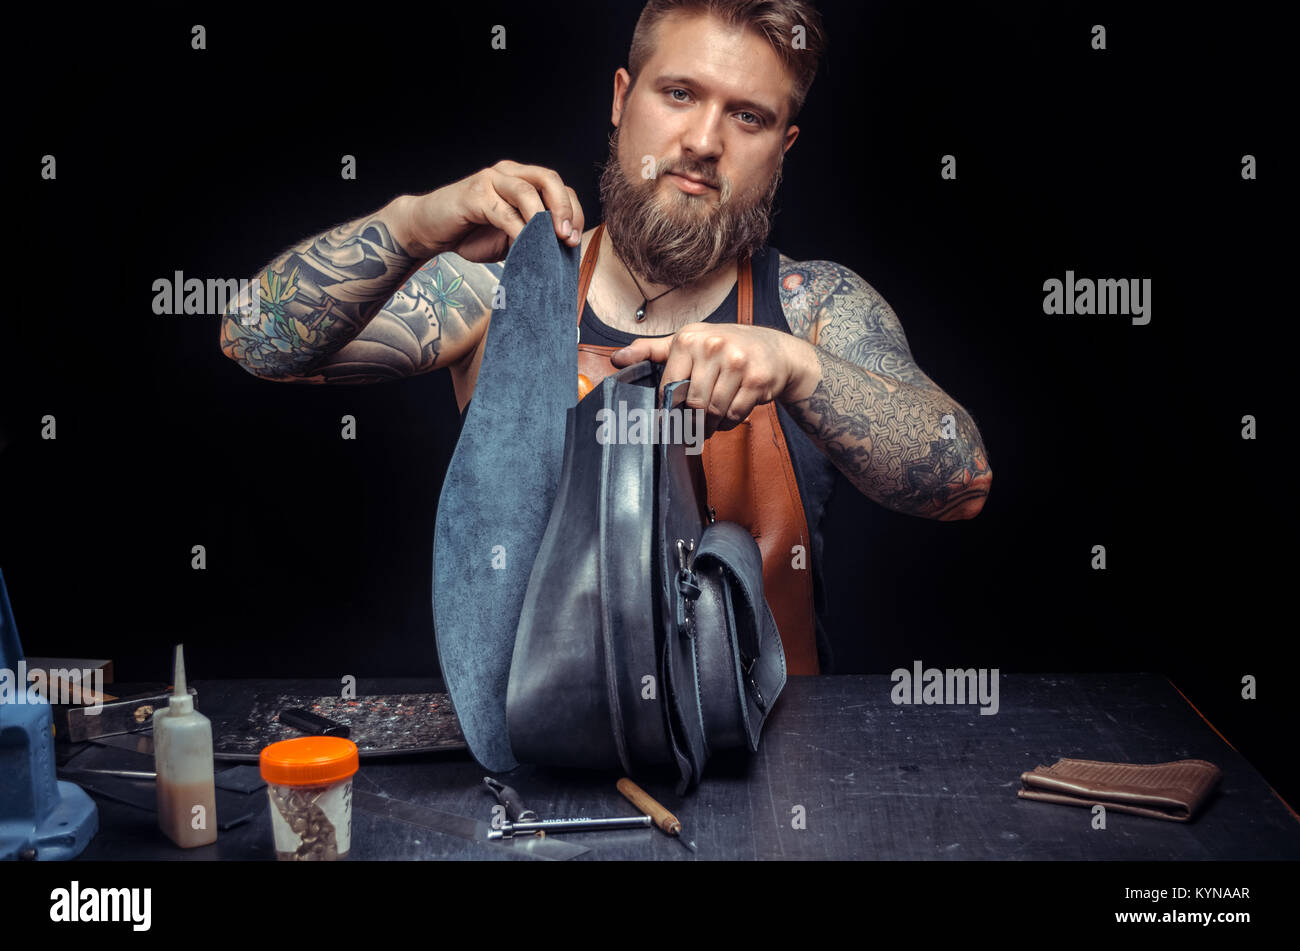 Worker of leather working with leather using crafting tools at a workshop - Stock Image